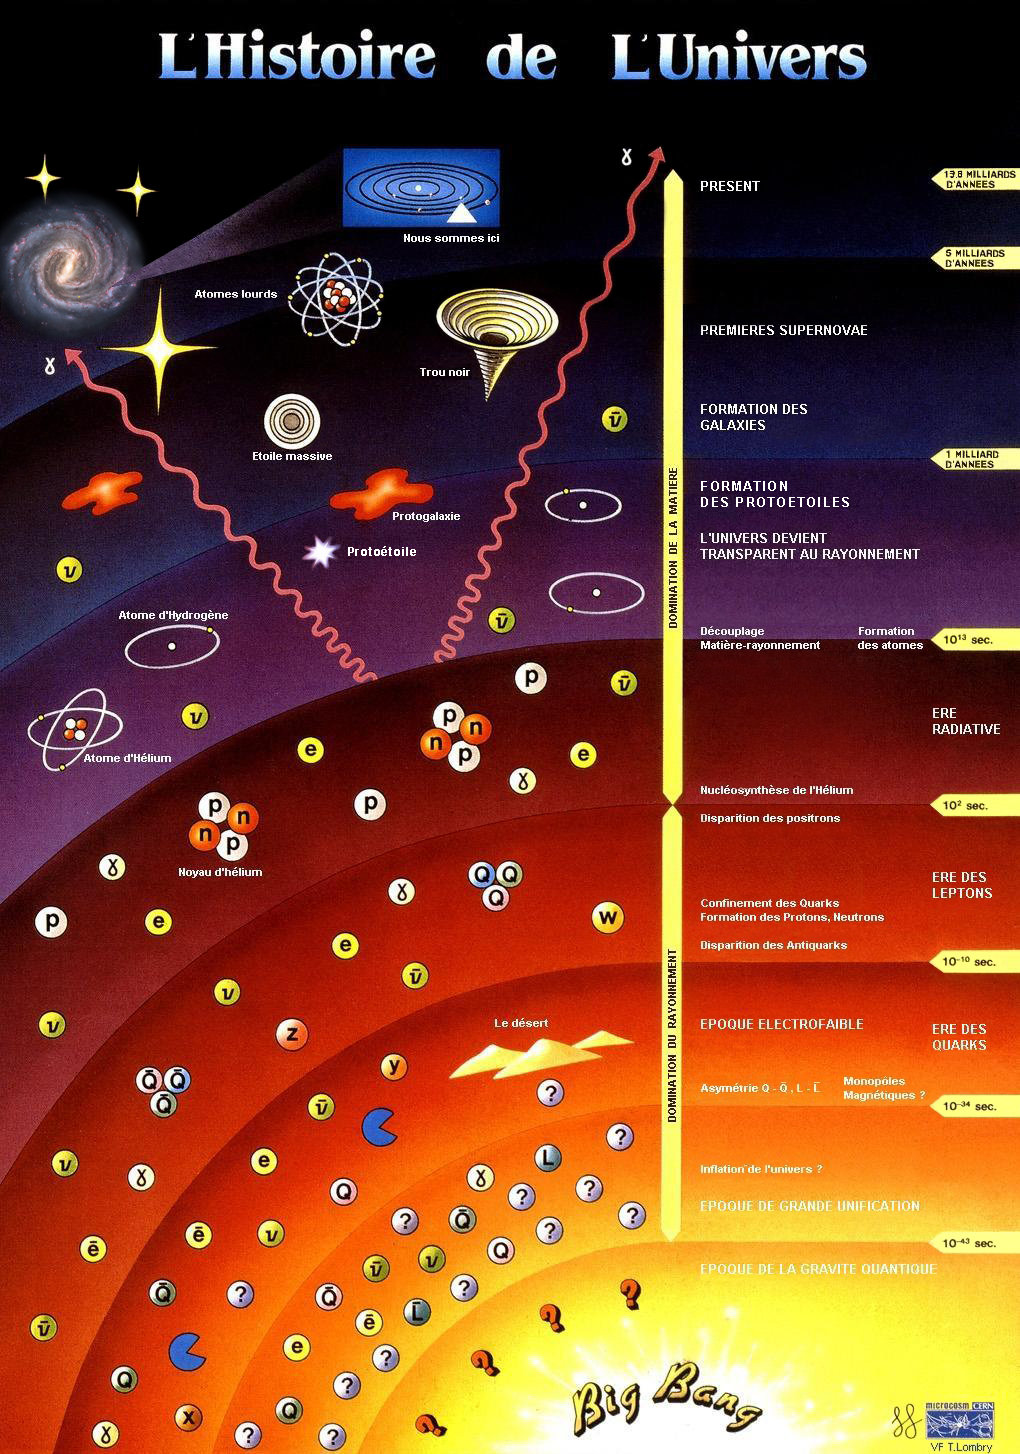 """time of big bang nucleosynthesis Trace amounts of lithium were also produced at this time this process of light element formation in the early universe is called """"big bang nucleosynthesis"""" ( bbn) the quantity of light elements predicted for a given universe density serves as a double check the predicted abundance of deuterium, helium."""